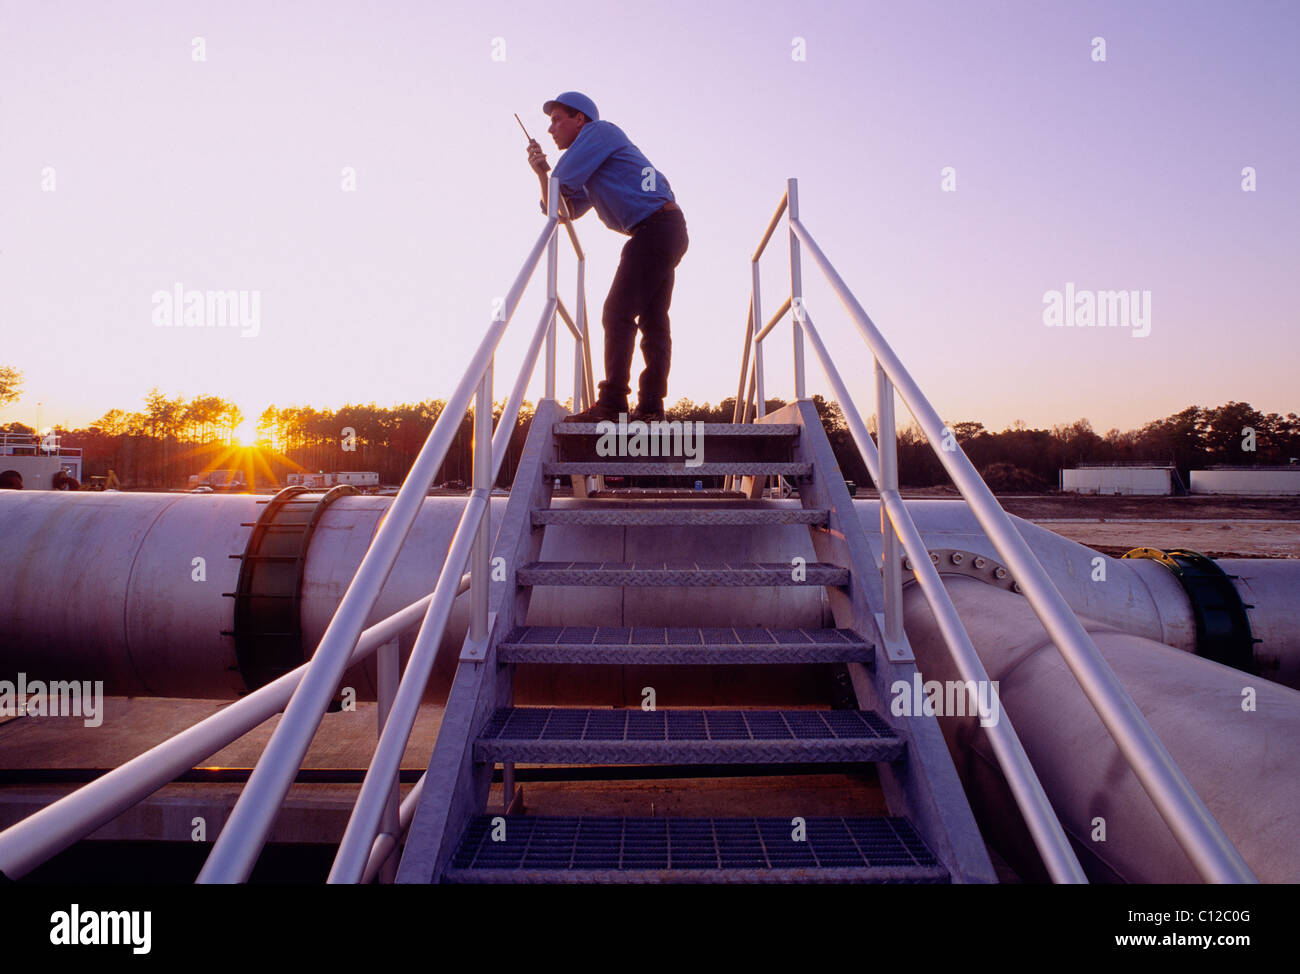 Ingeniero en un radio walkie talkie al atardecer en una planta de tratamiento de aguas residuales, Houston, Texas, Imagen De Stock